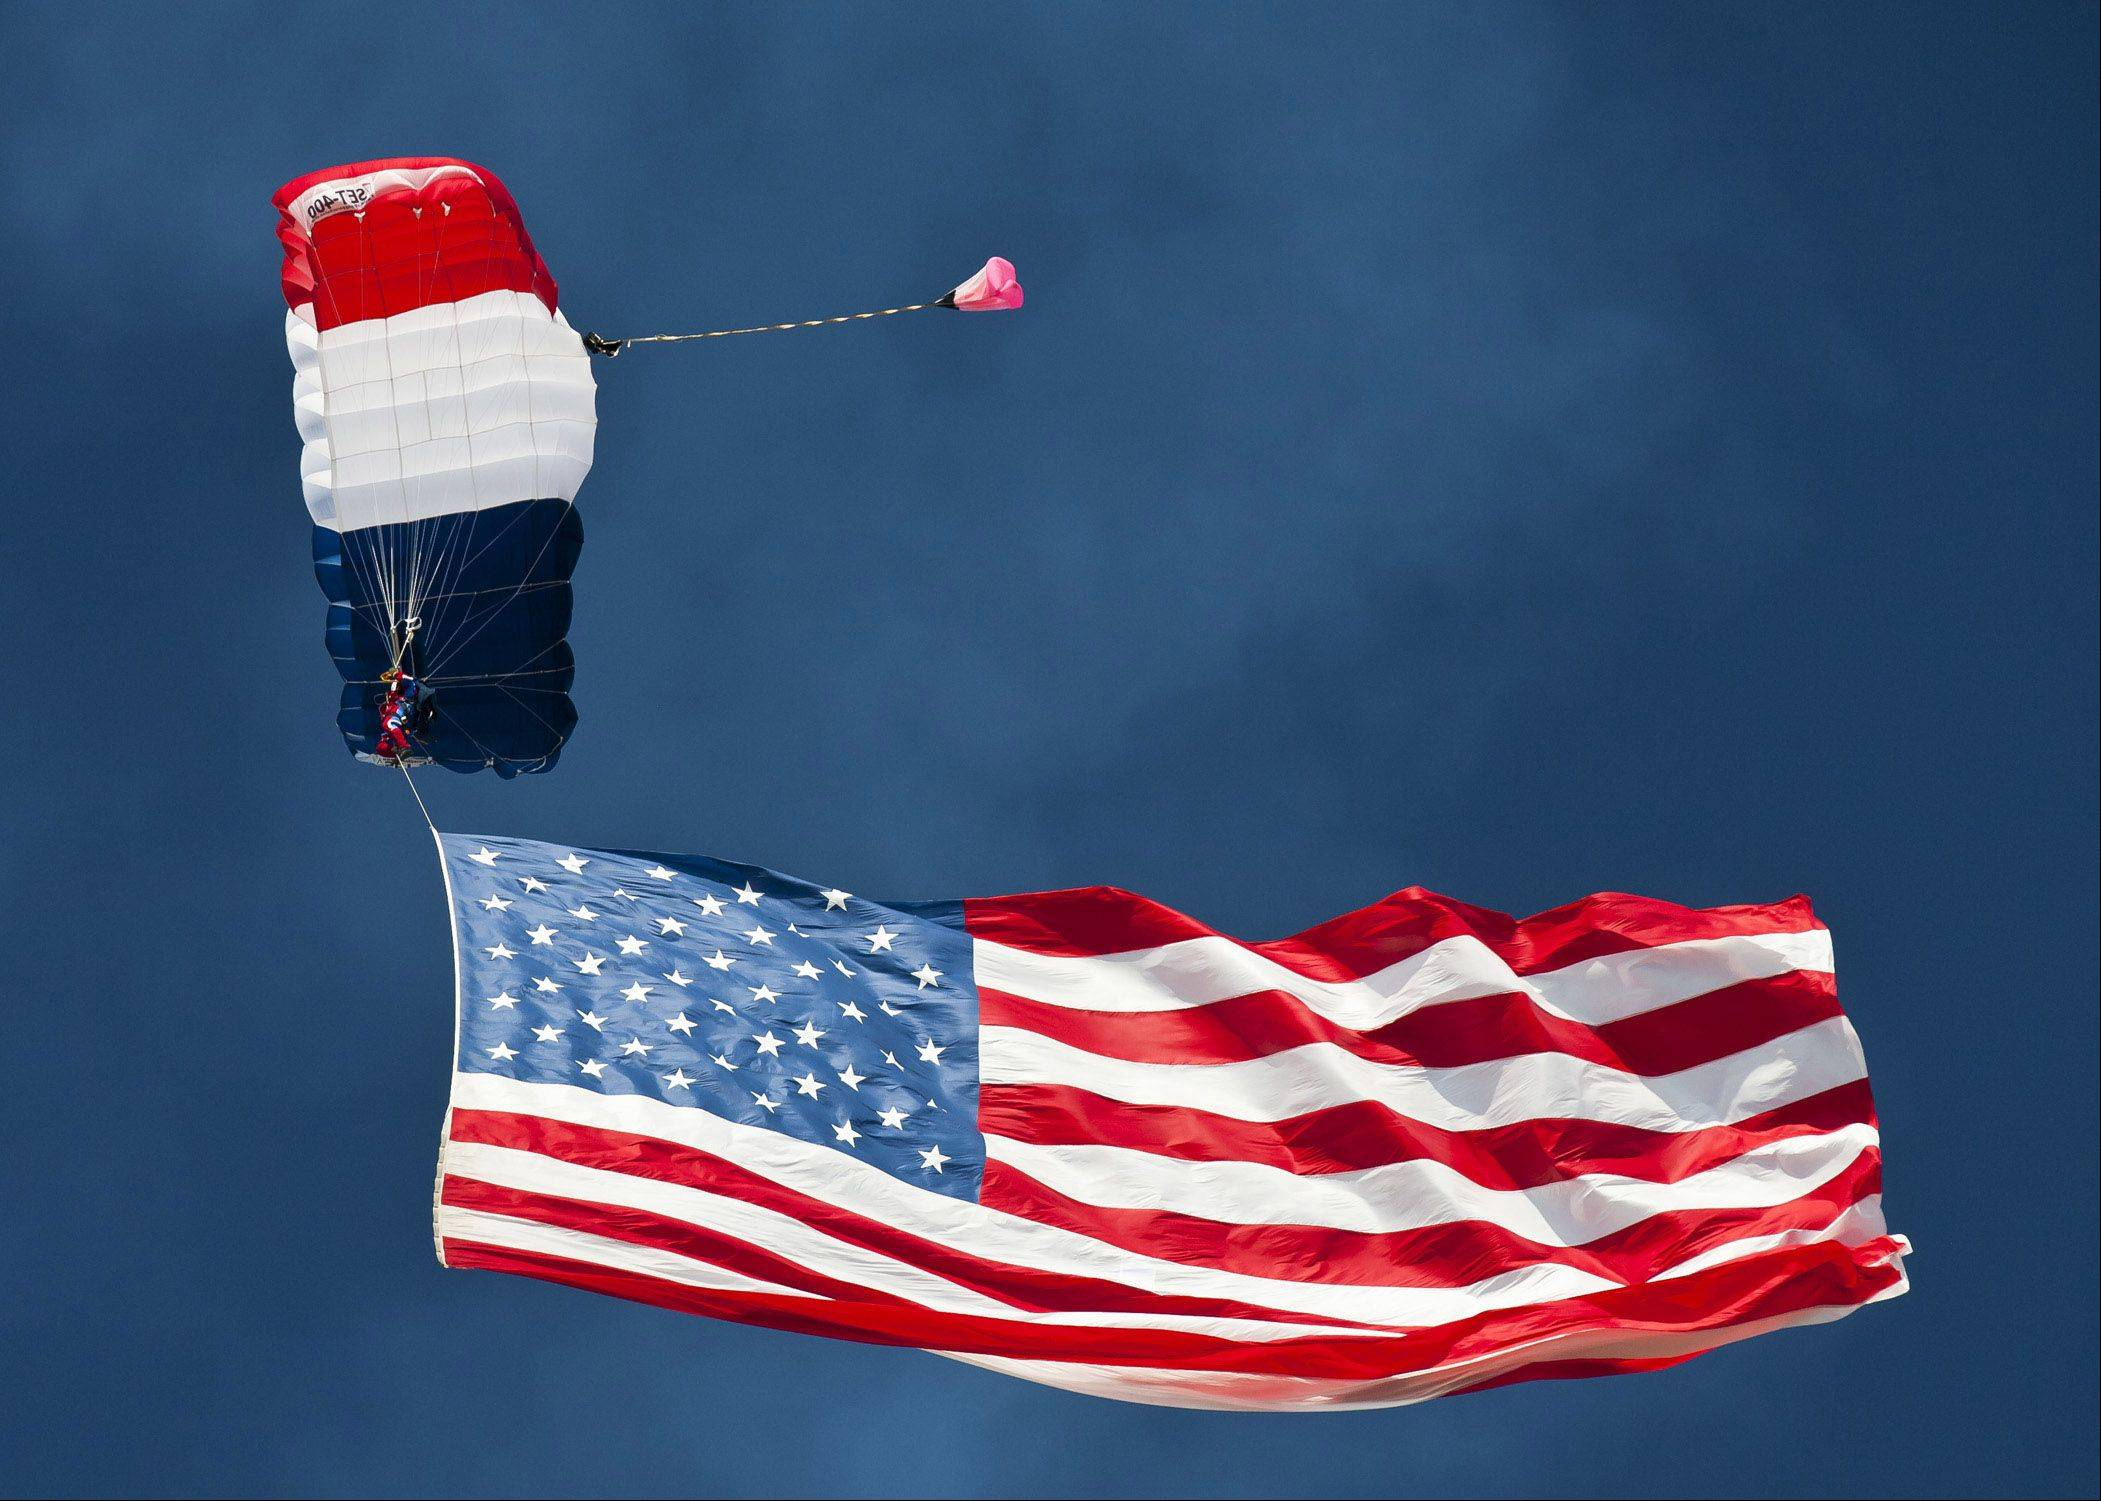 A parachute demonstration during the EAA Oshkosh Airshow on July 28.